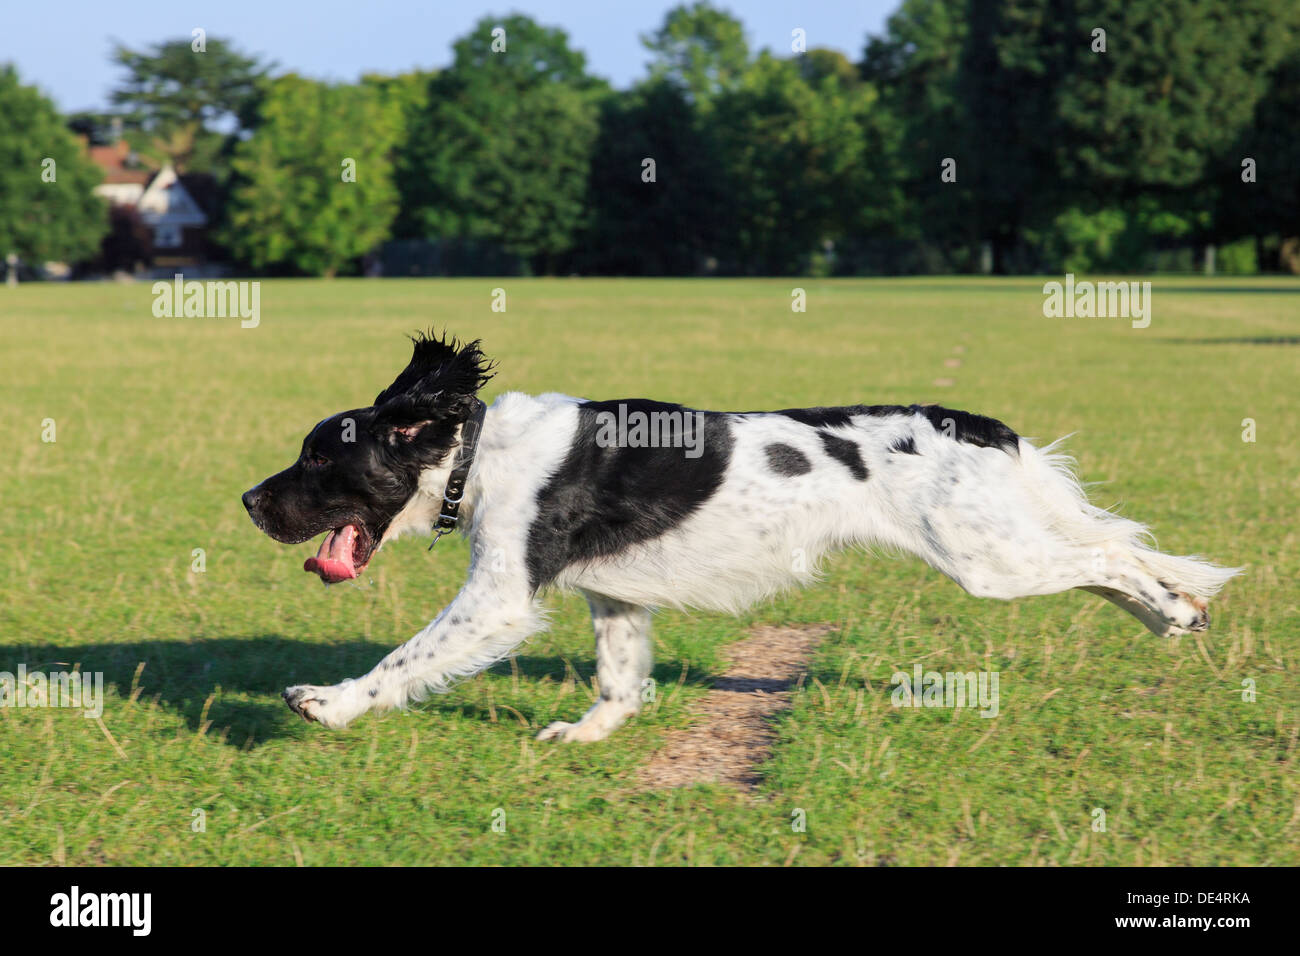 A purebred Black and White English Springer Spaniel dog running fast chasing a ball outside alone in a park. England, - Stock Image